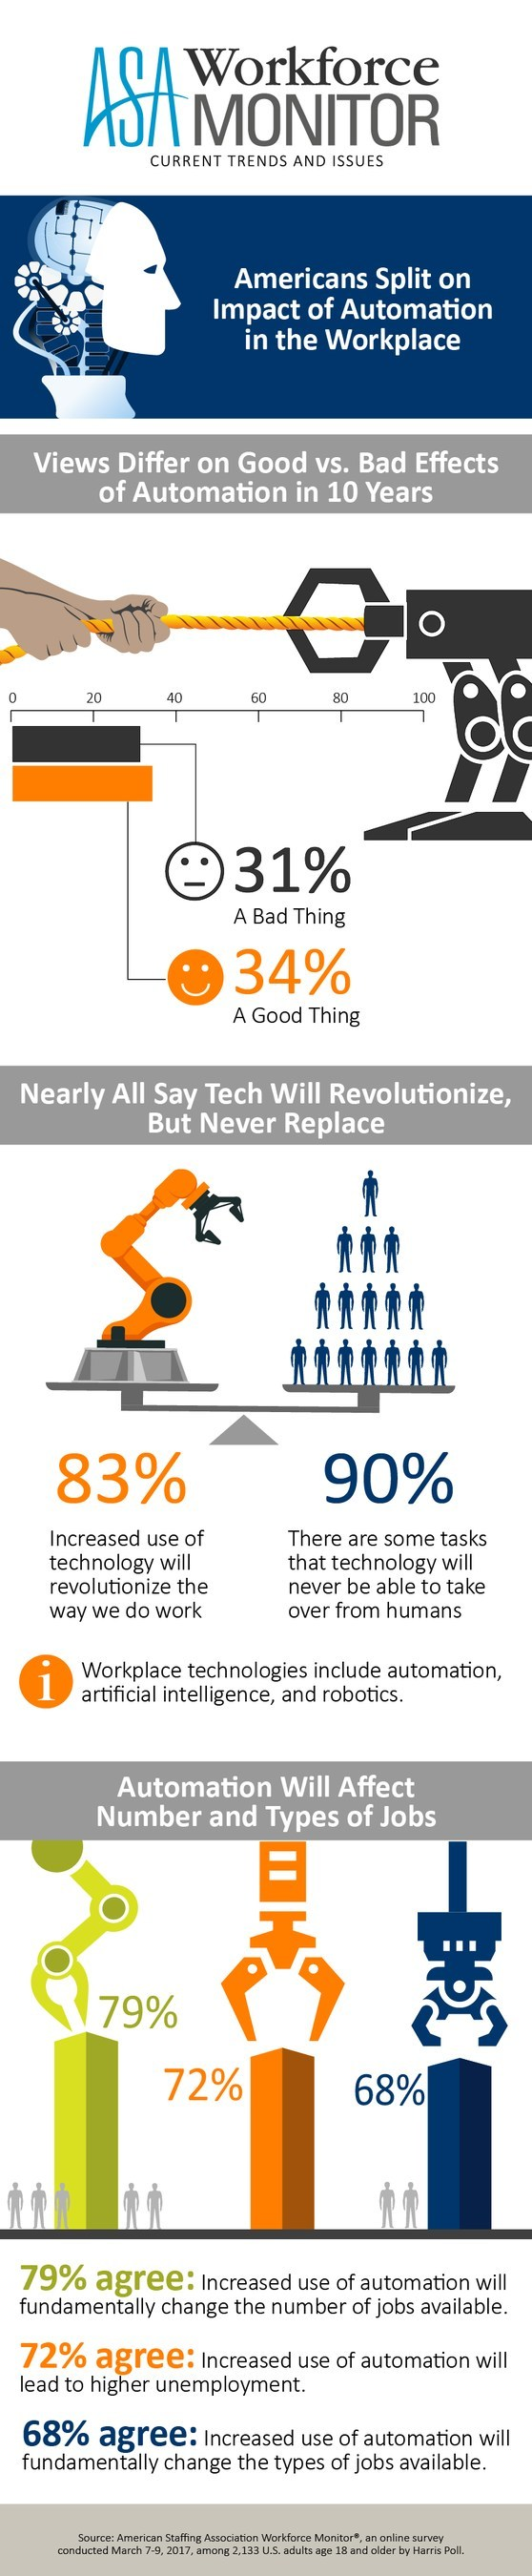 American are split on impact of automation in the workplace, according to the American Staffing Association Workforce Monitor released today.